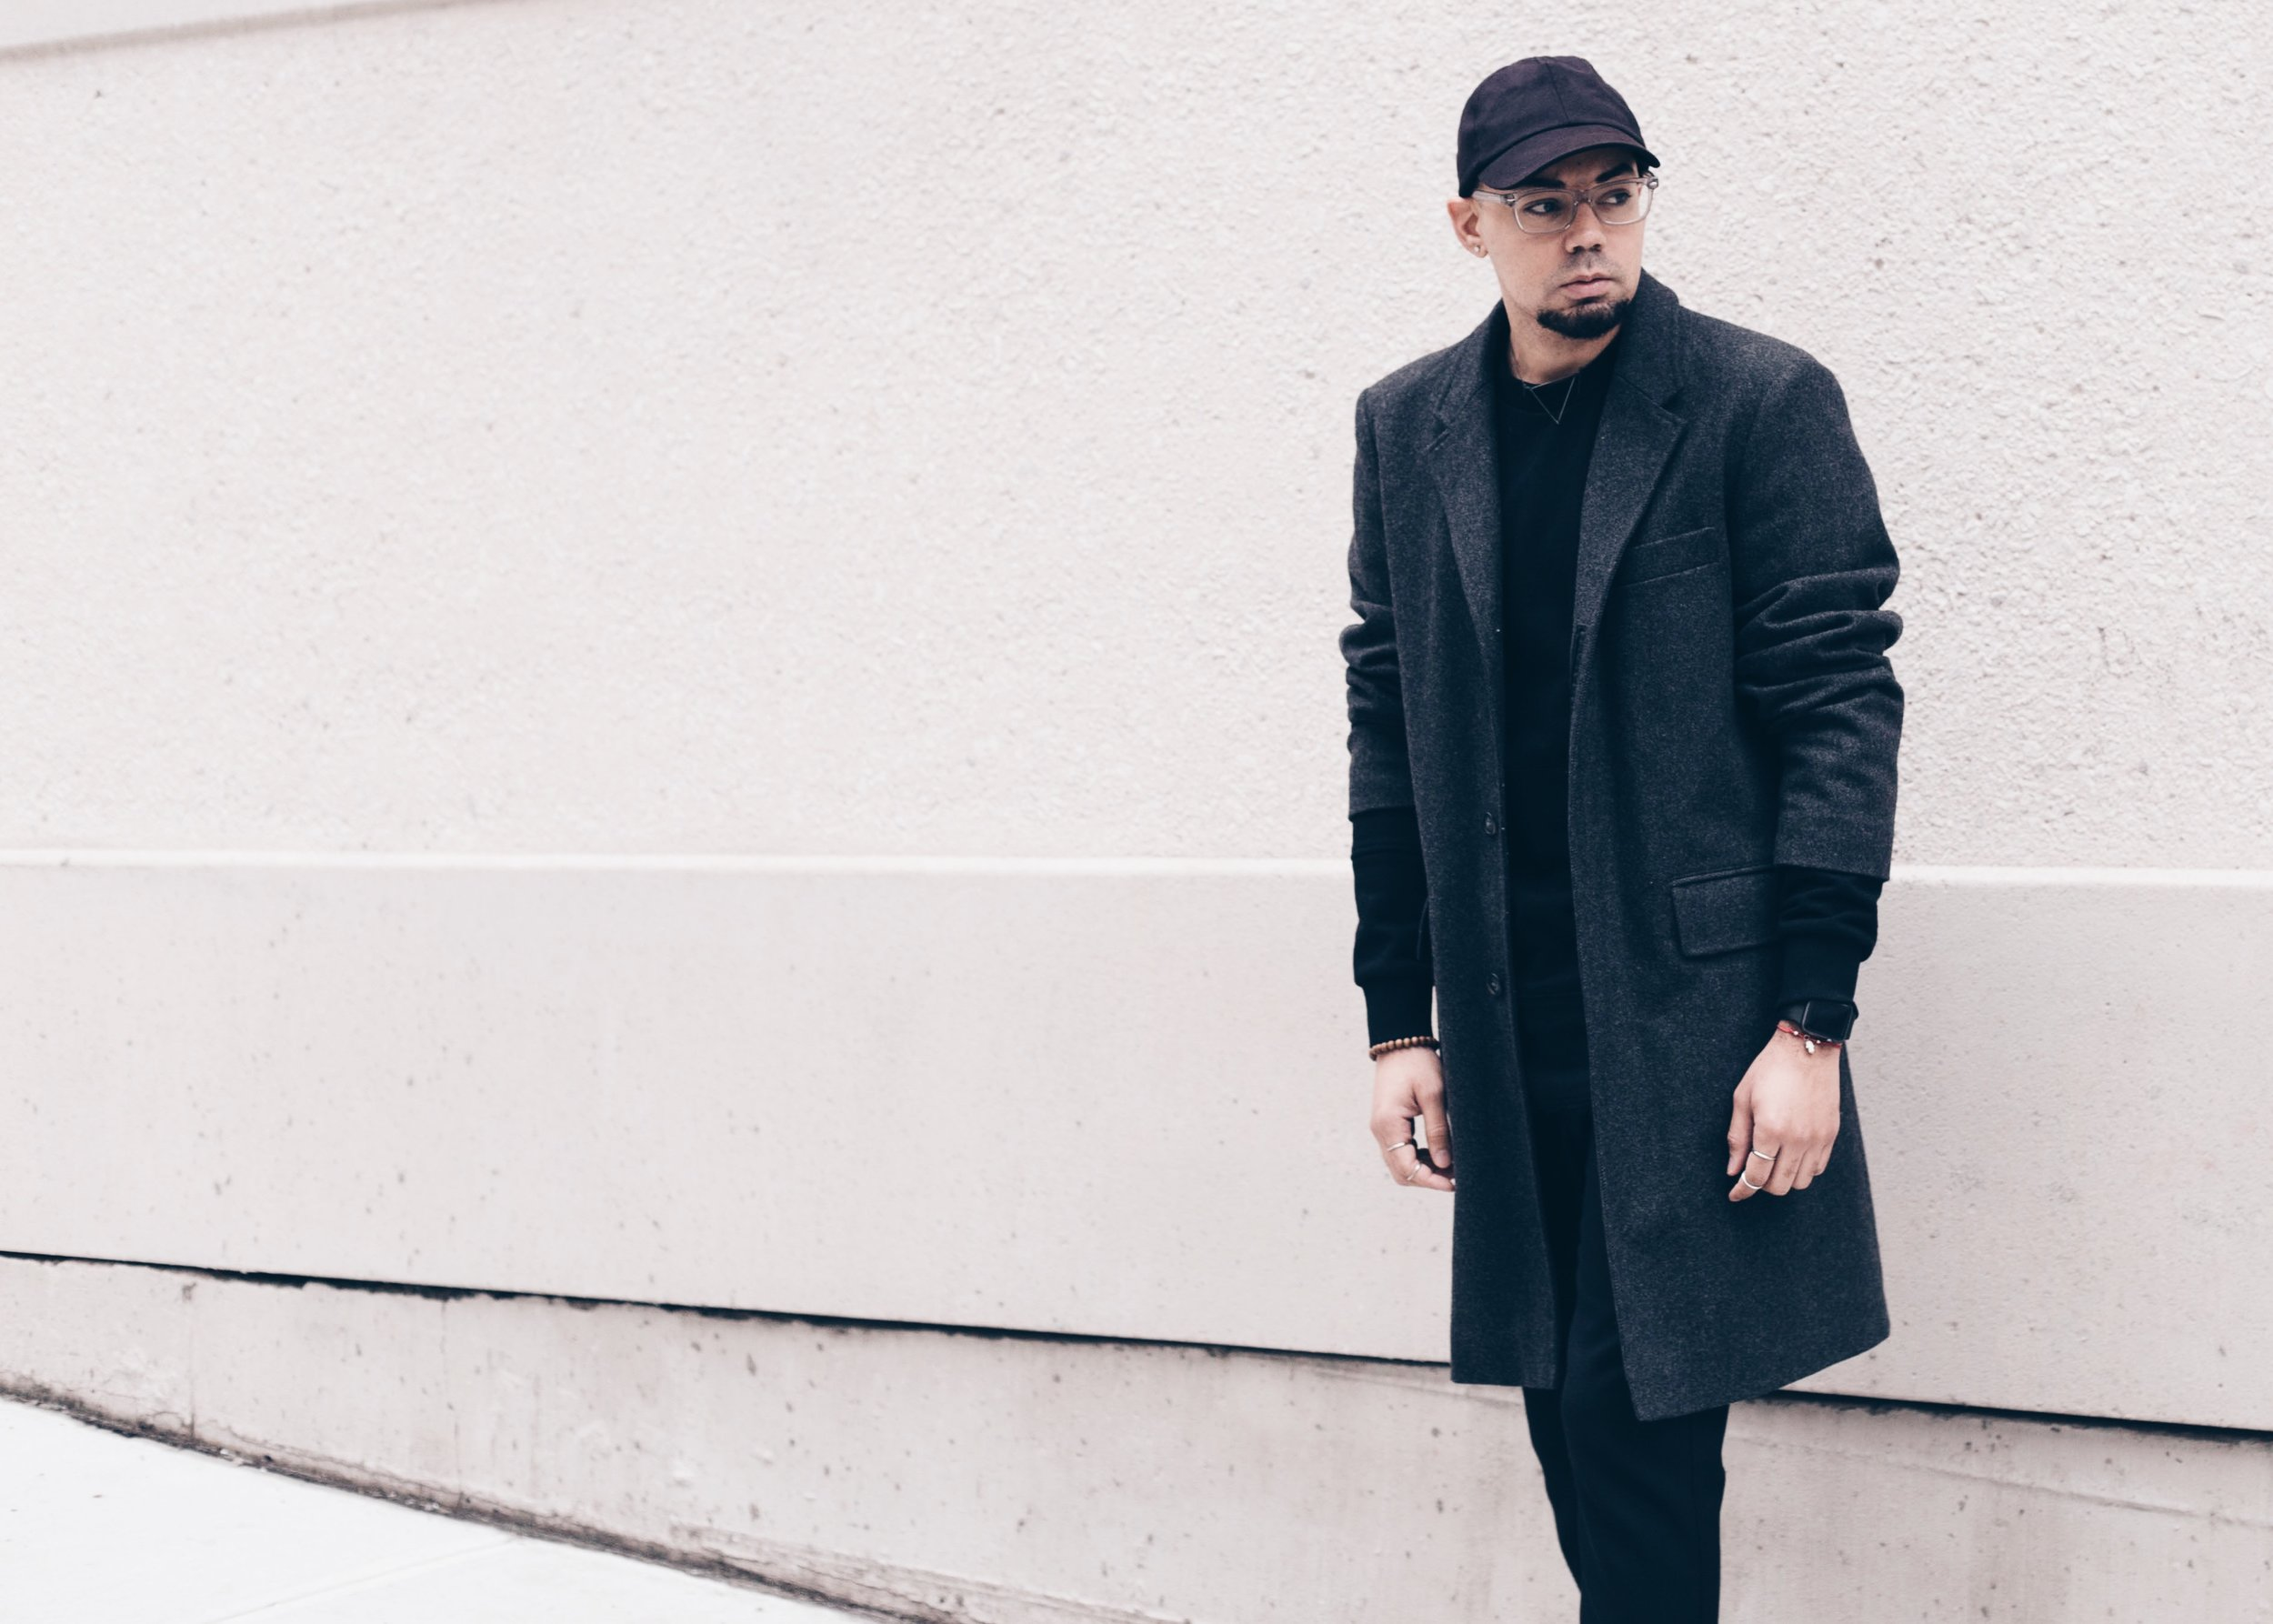 sam-c-perry-all-black-distressed-sweater-oversized-overcoat-cropped-side.jpg